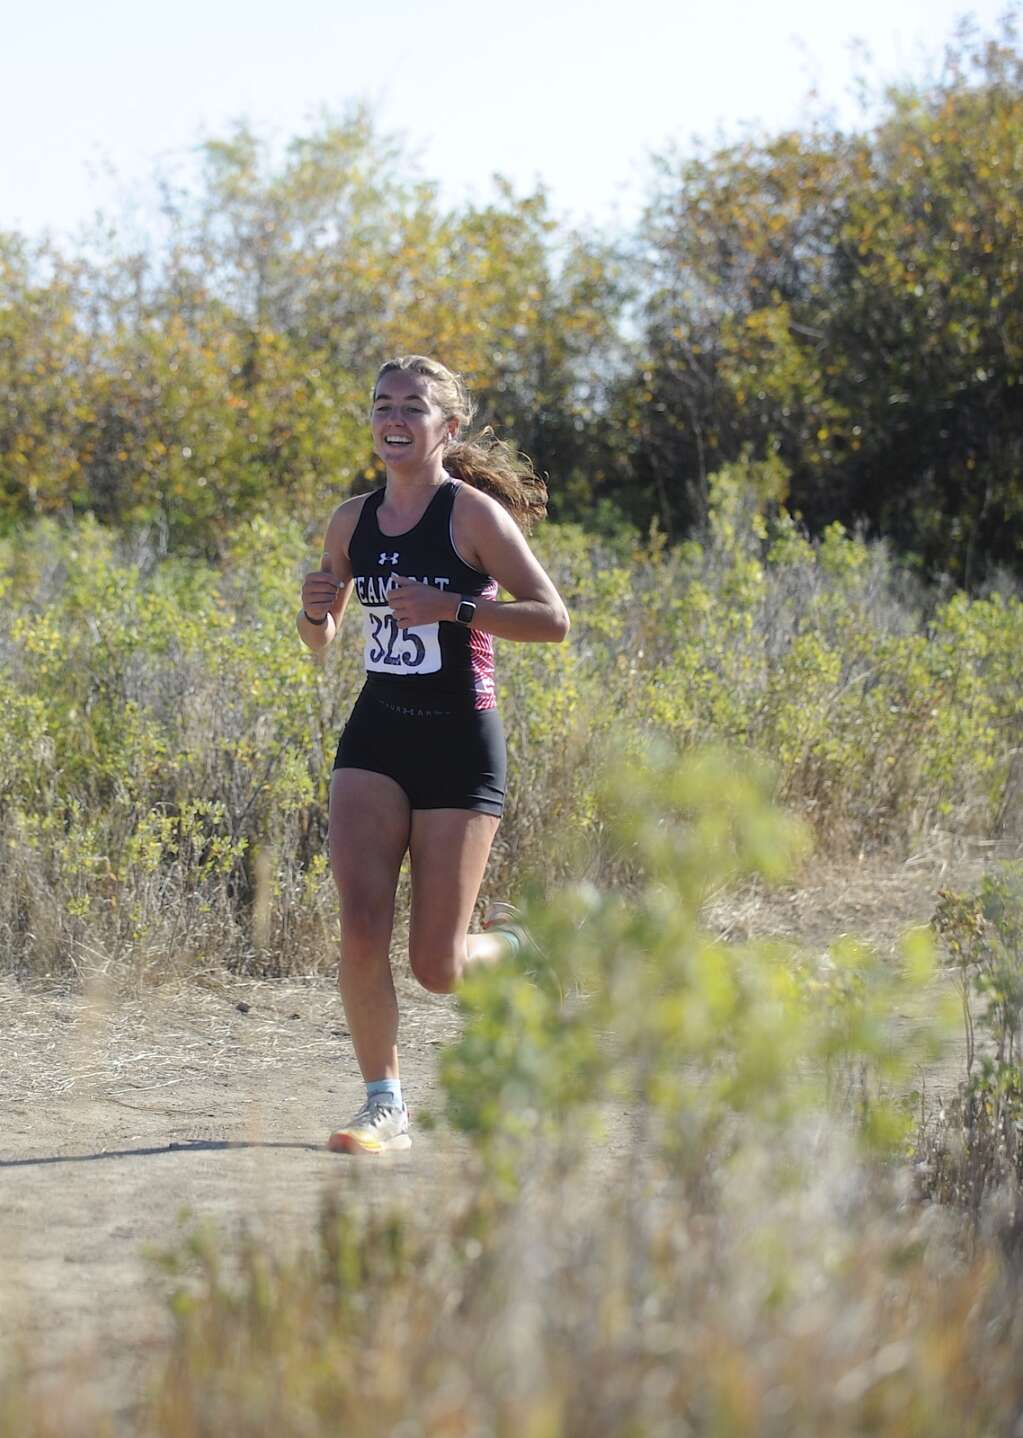 Steamboat Springs senior Courtney Vargas offers a pair of thumbs up while running at a cross country meet at Loudy-Simpson Park in Craig on Saturday morning.   Shelby Reardon/Steamboat Pilot & Today